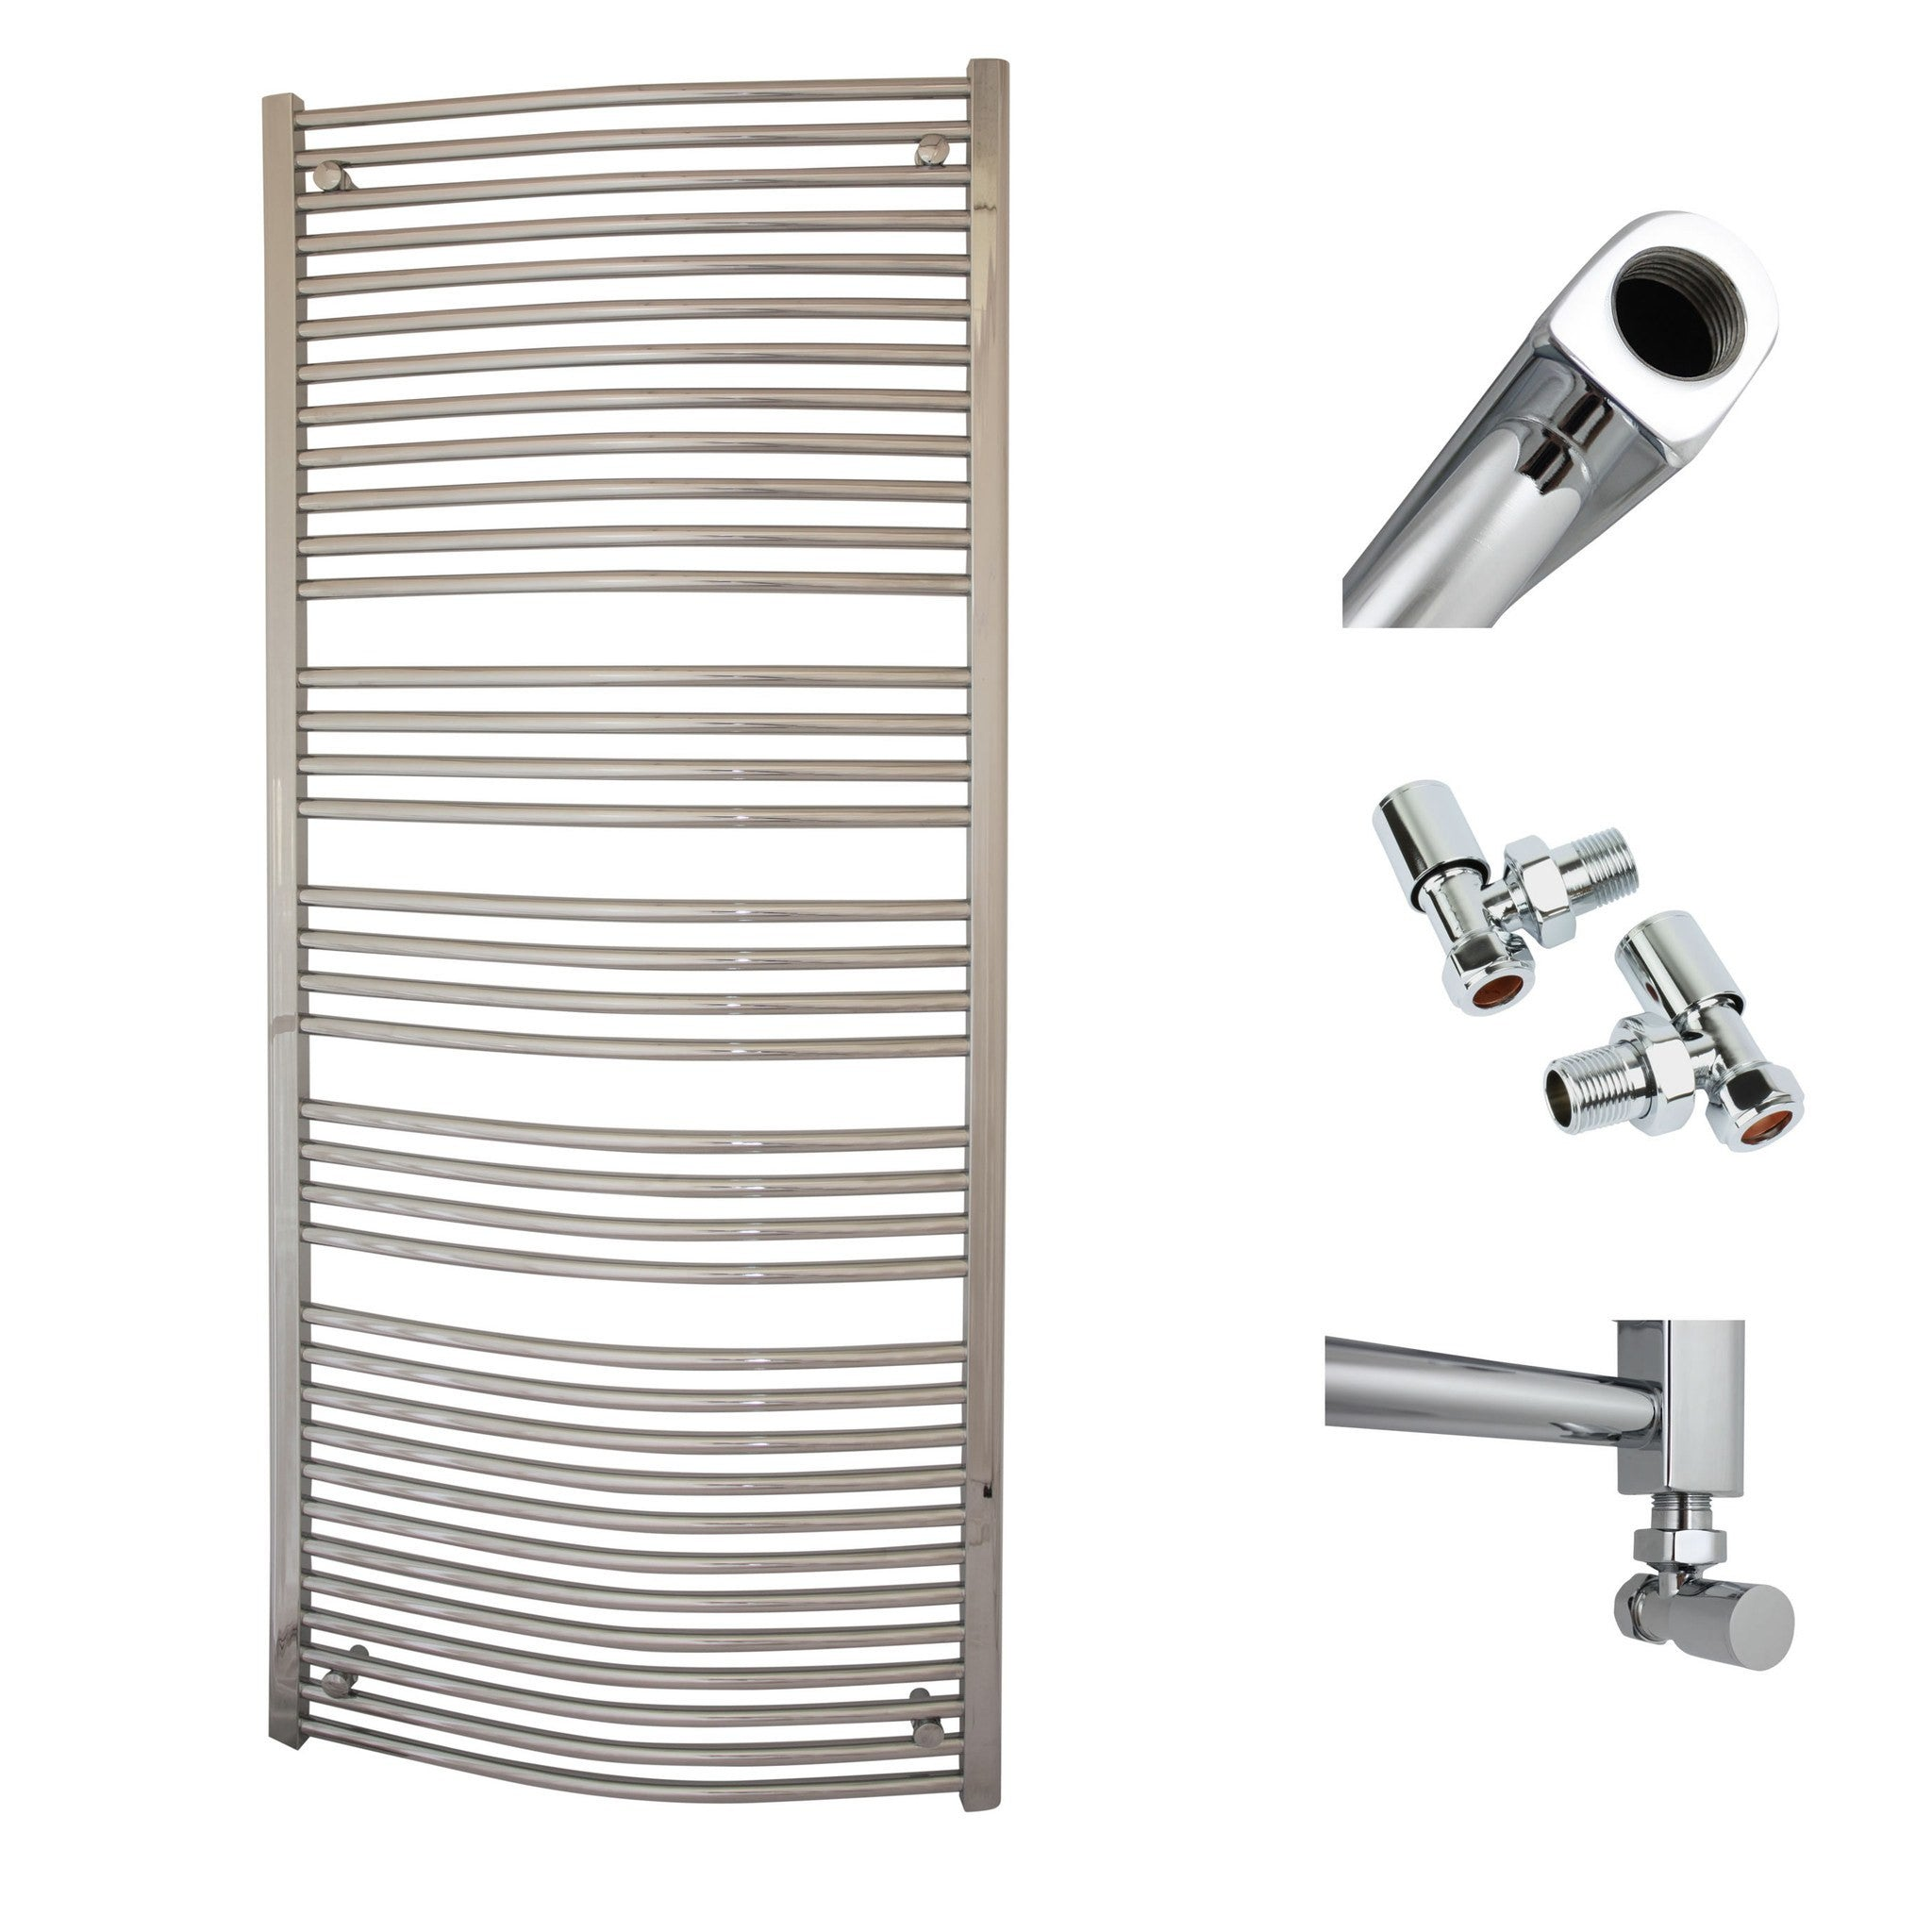 750mm x 1800mm High Curved Chrome Towel Rail Radiator With Angled Valve